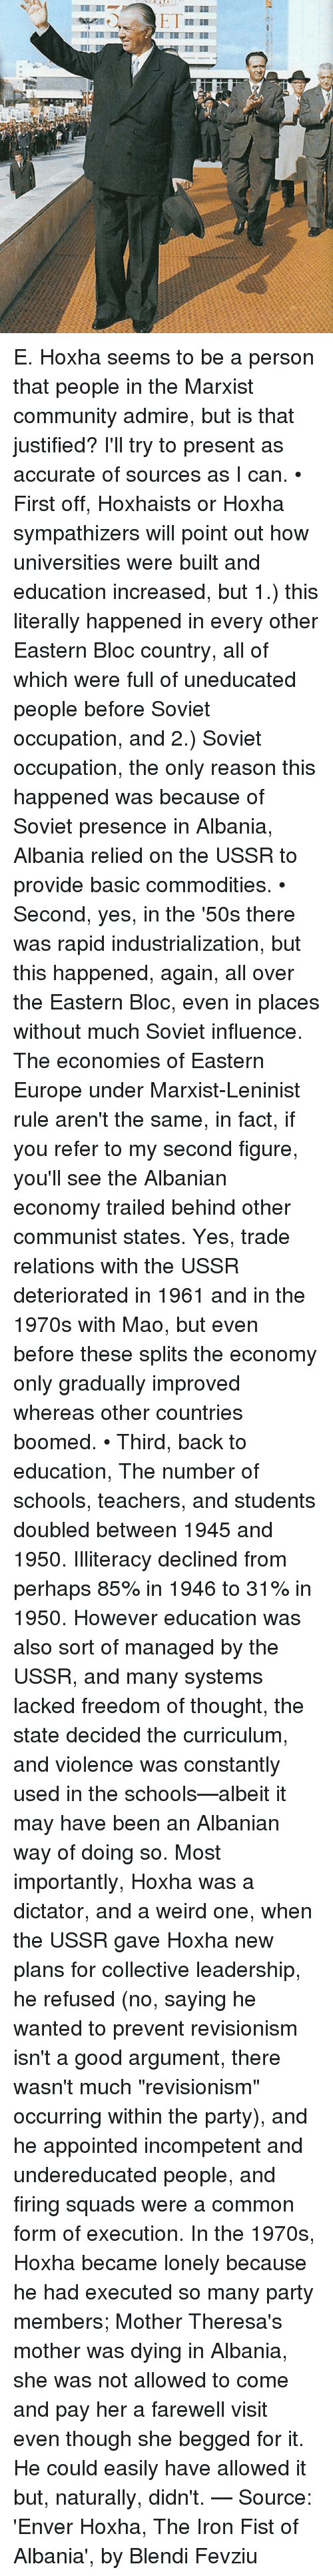 """Enver Hoxha: Ill I E. Hoxha seems to be a person that people in the Marxist community admire, but is that justified? I'll try to present as accurate of sources as I can. • First off, Hoxhaists or Hoxha sympathizers will point out how universities were built and education increased, but 1.) this literally happened in every other Eastern Bloc country, all of which were full of uneducated people before Soviet occupation, and 2.) Soviet occupation, the only reason this happened was because of Soviet presence in Albania, Albania relied on the USSR to provide basic commodities. • Second, yes, in the '50s there was rapid industrialization, but this happened, again, all over the Eastern Bloc, even in places without much Soviet influence. The economies of Eastern Europe under Marxist-Leninist rule aren't the same, in fact, if you refer to my second figure, you'll see the Albanian economy trailed behind other communist states. Yes, trade relations with the USSR deteriorated in 1961 and in the 1970s with Mao, but even before these splits the economy only gradually improved whereas other countries boomed. • Third, back to education, The number of schools, teachers, and students doubled between 1945 and 1950. Illiteracy declined from perhaps 85% in 1946 to 31% in 1950. However education was also sort of managed by the USSR, and many systems lacked freedom of thought, the state decided the curriculum, and violence was constantly used in the schools—albeit it may have been an Albanian way of doing so. Most importantly, Hoxha was a dictator, and a weird one, when the USSR gave Hoxha new plans for collective leadership, he refused (no, saying he wanted to prevent revisionism isn't a good argument, there wasn't much """"revisionism"""" occurring within the party), and he appointed incompetent and undereducated people, and firing squads were a common form of execution. In the 1970s, Hoxha became lonely because he had executed so many party members; Mother Theresa's mother was dying in Alban"""